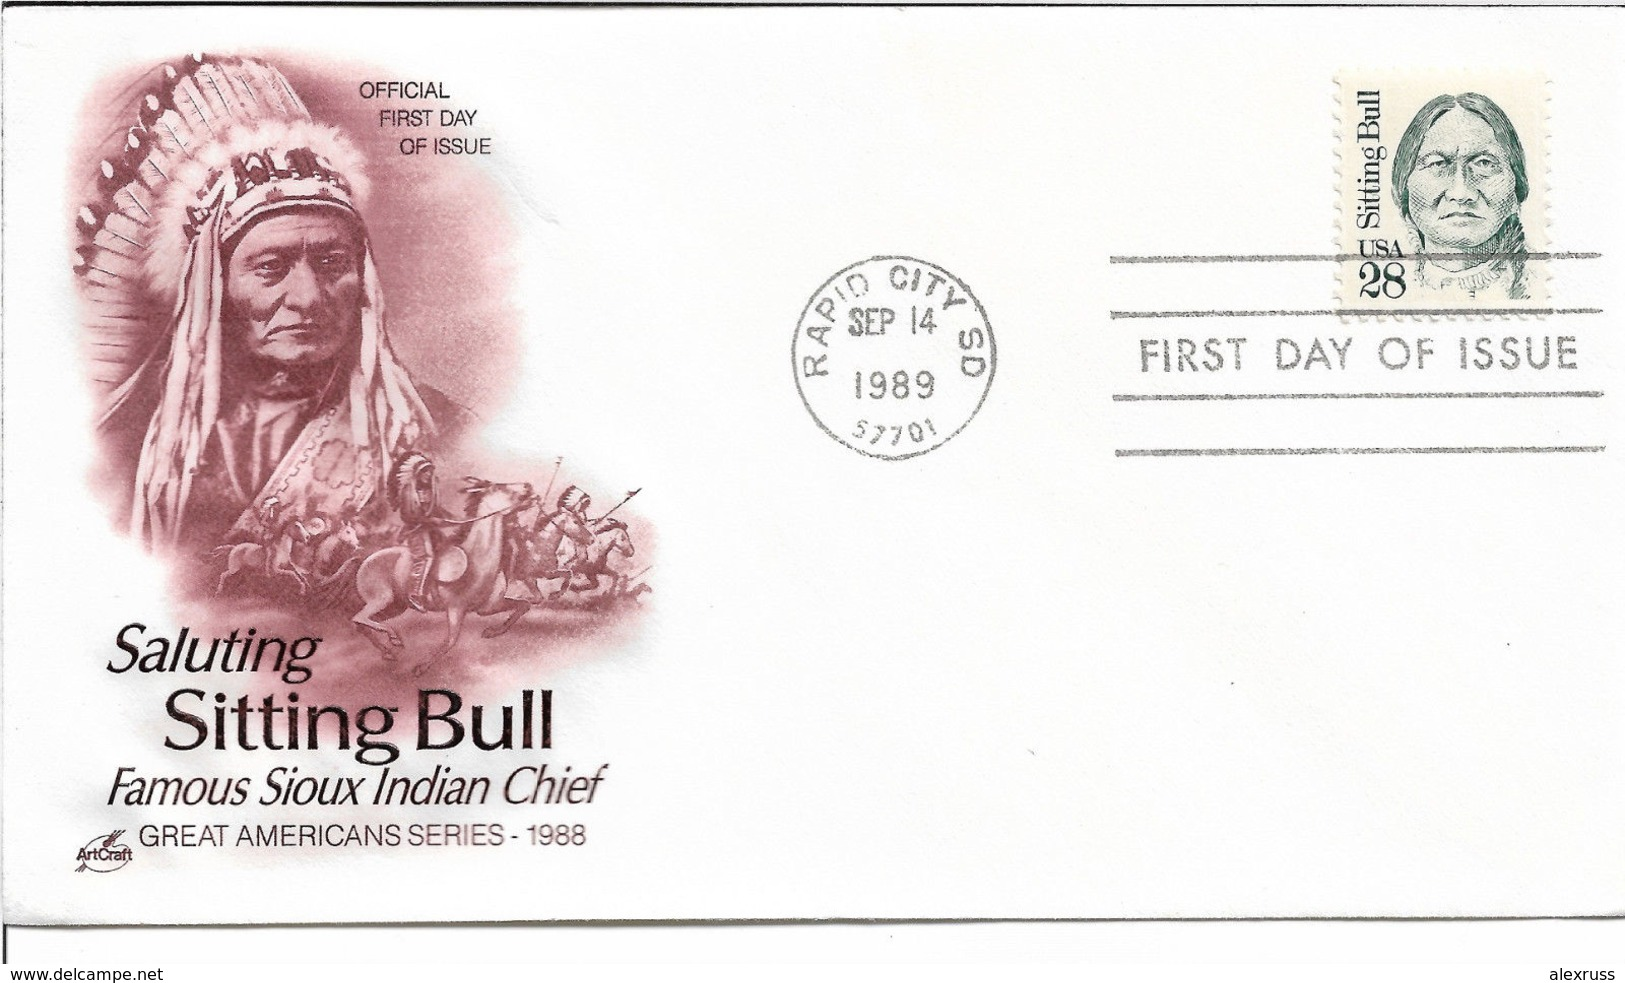 US FDC 1989 American Indians, Indian Chief Sitting Bull Cachet,VF-XF !! (RN-4) - American Indians